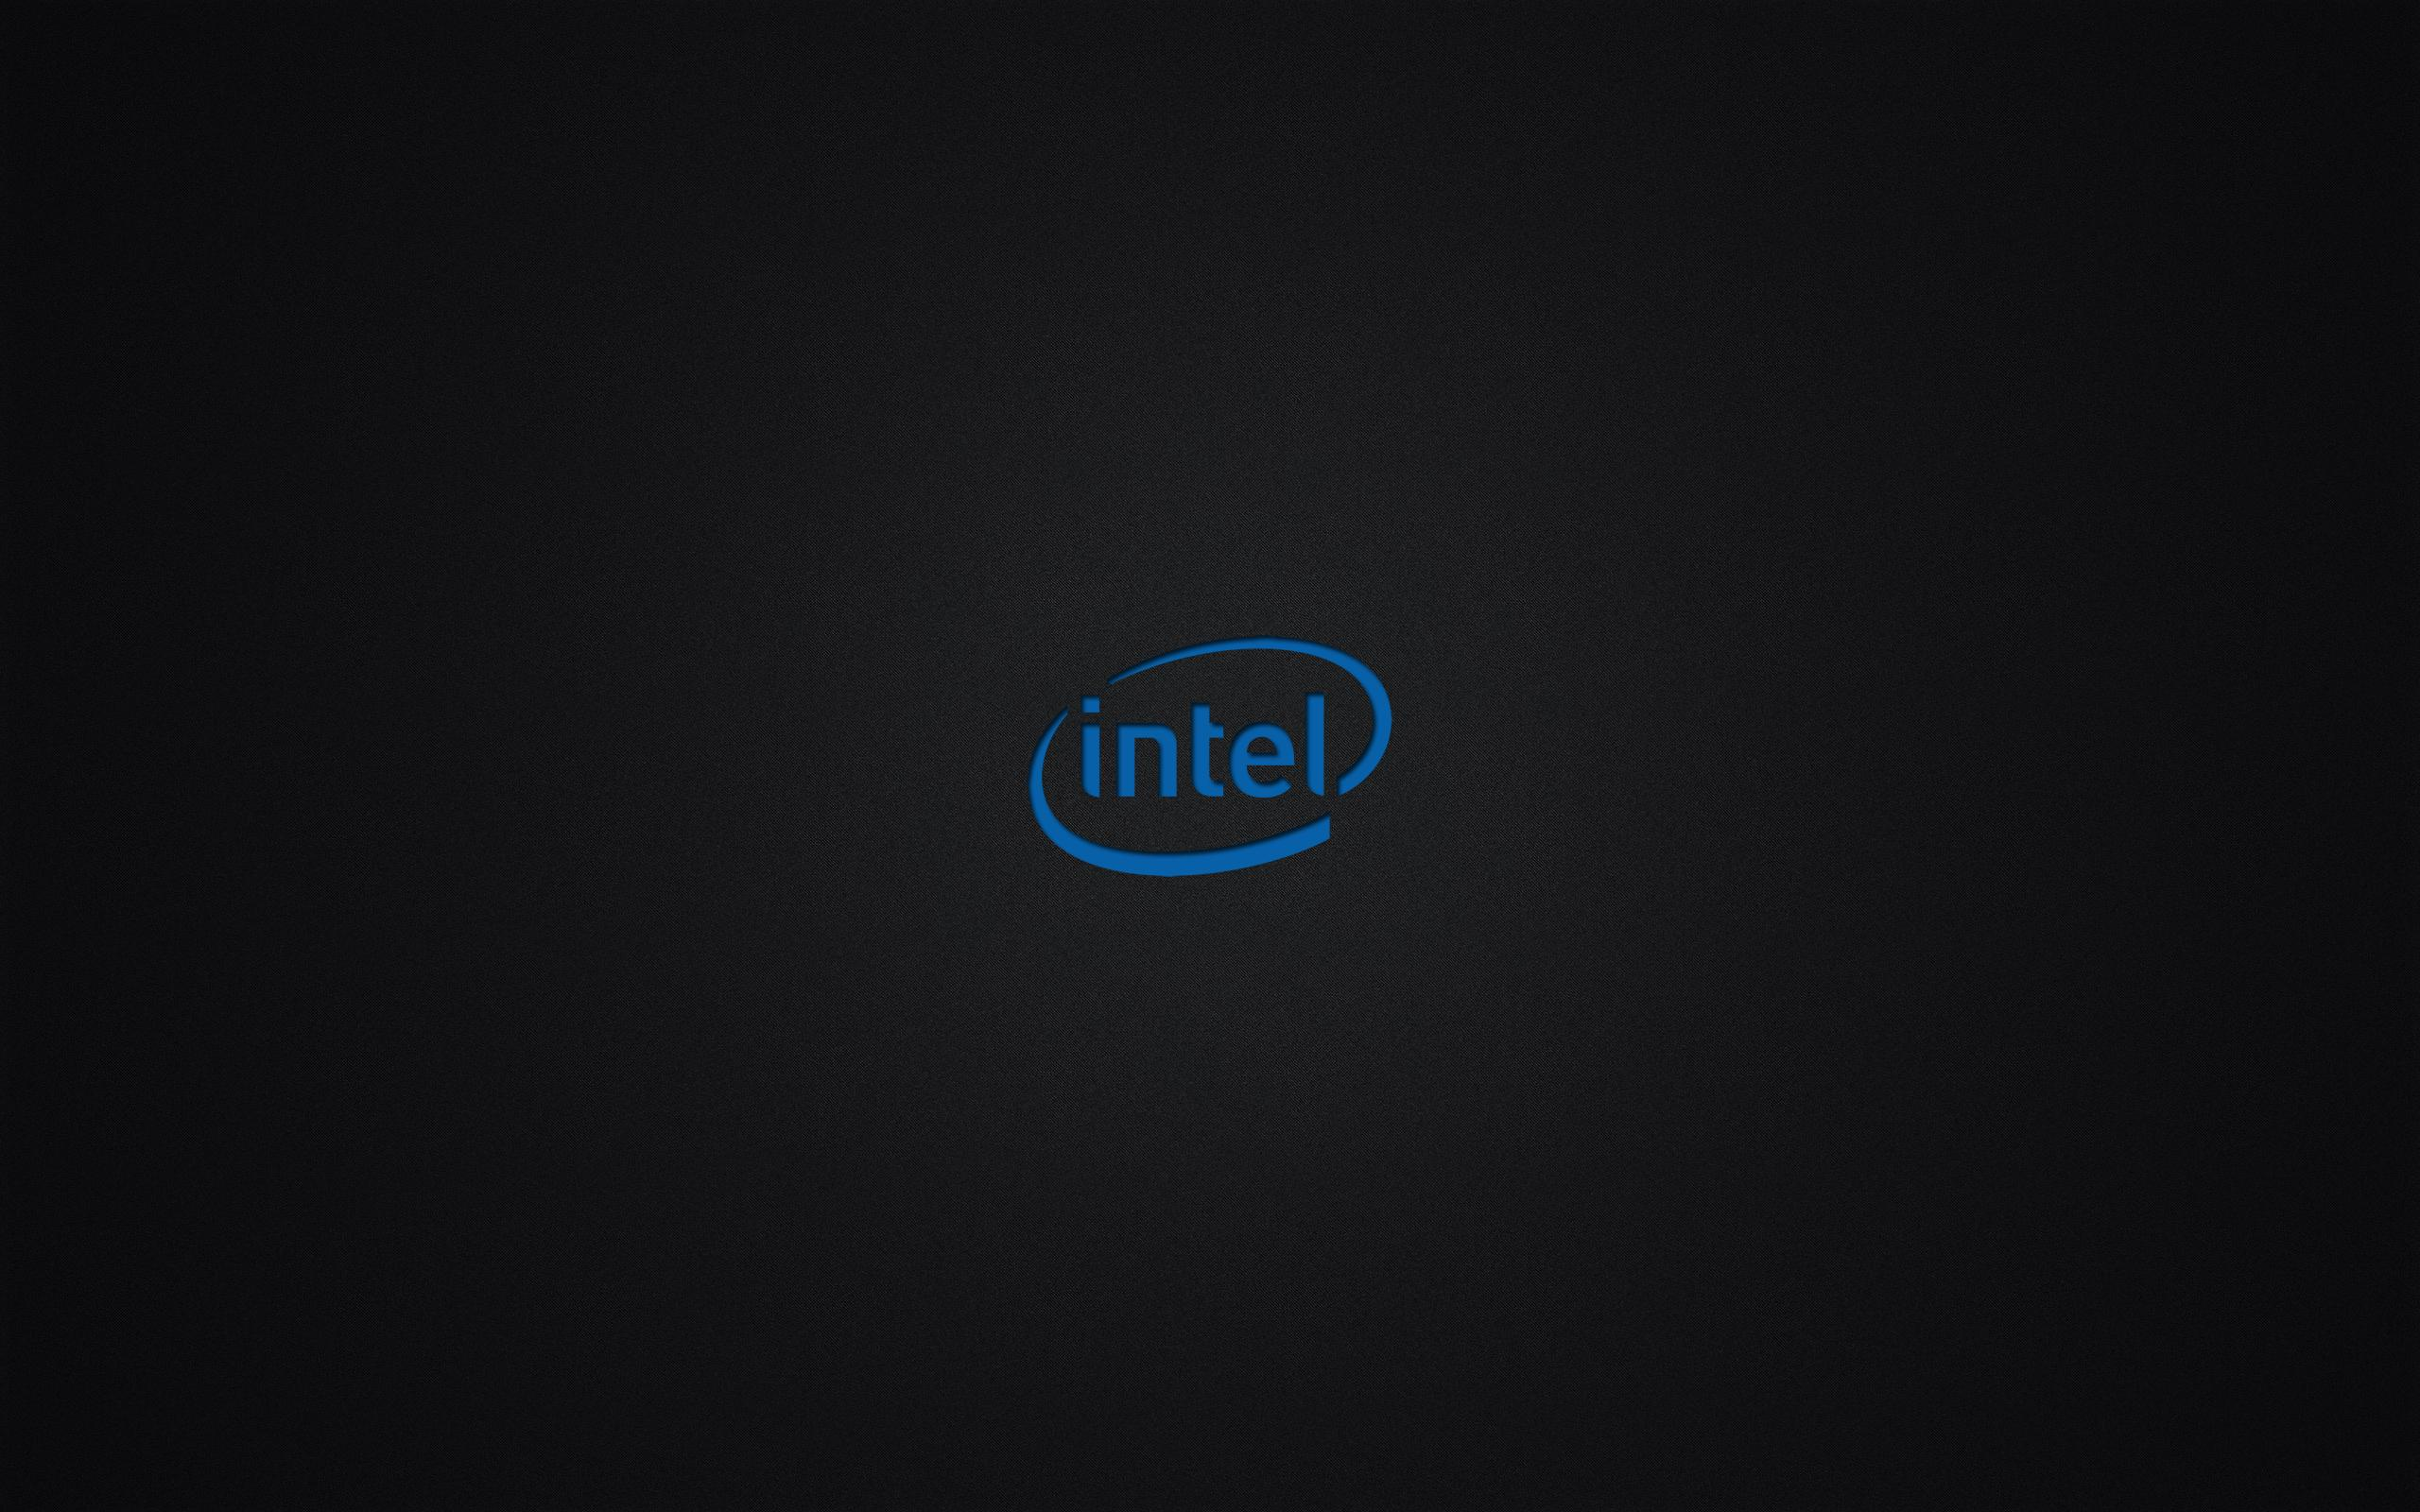 intel hd wallpapers